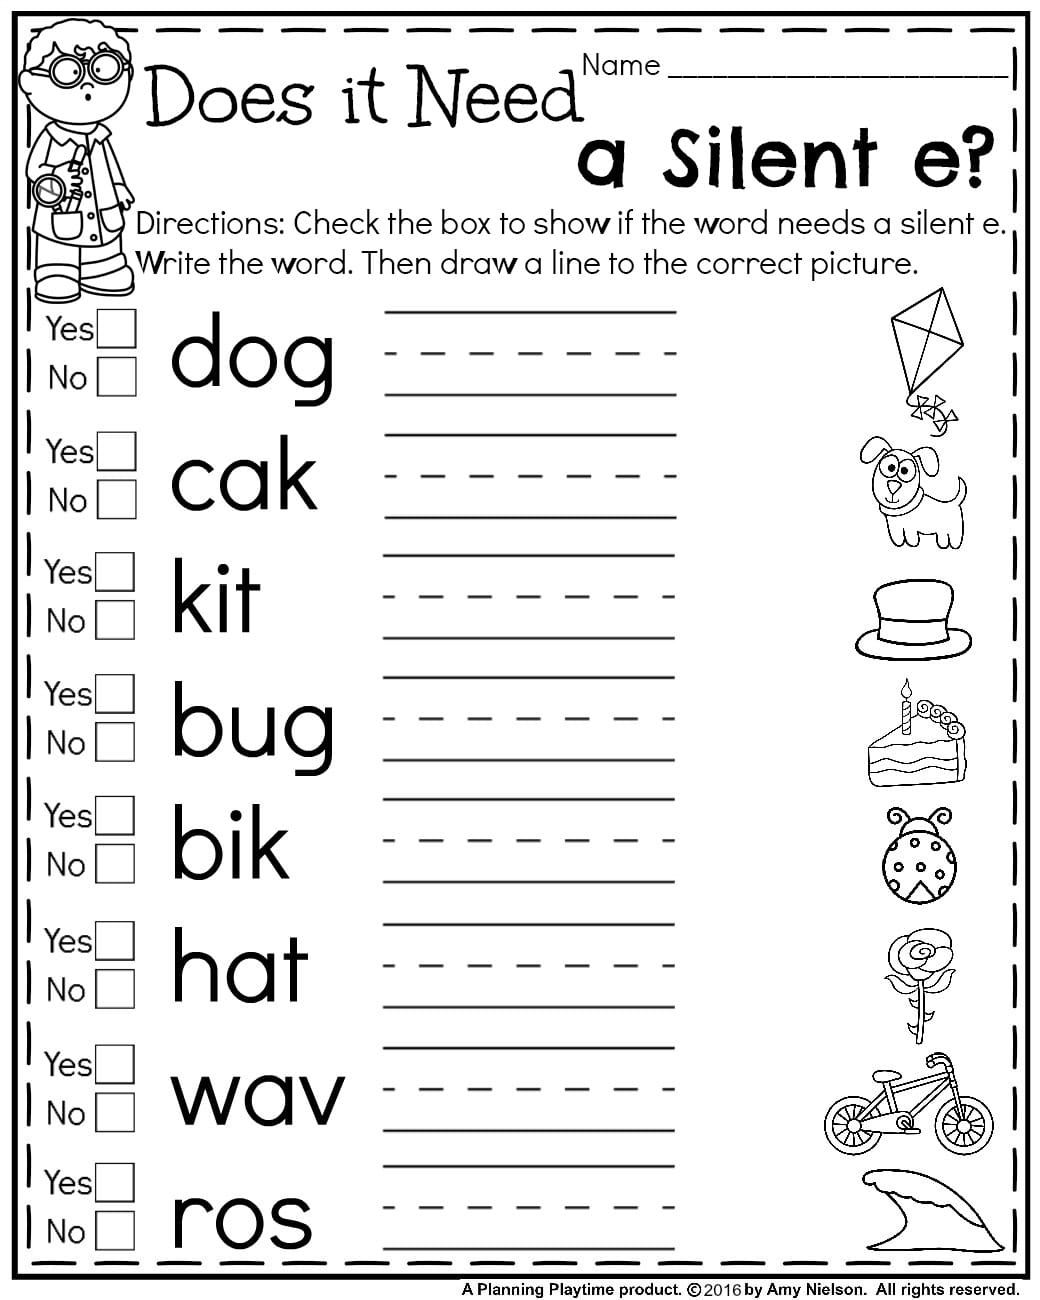 small resolution of https://cute766.info/first-grade-silent-e-worksheets-for-summer-1st-grade-worksheets-2nd-grade-worksheets-first/